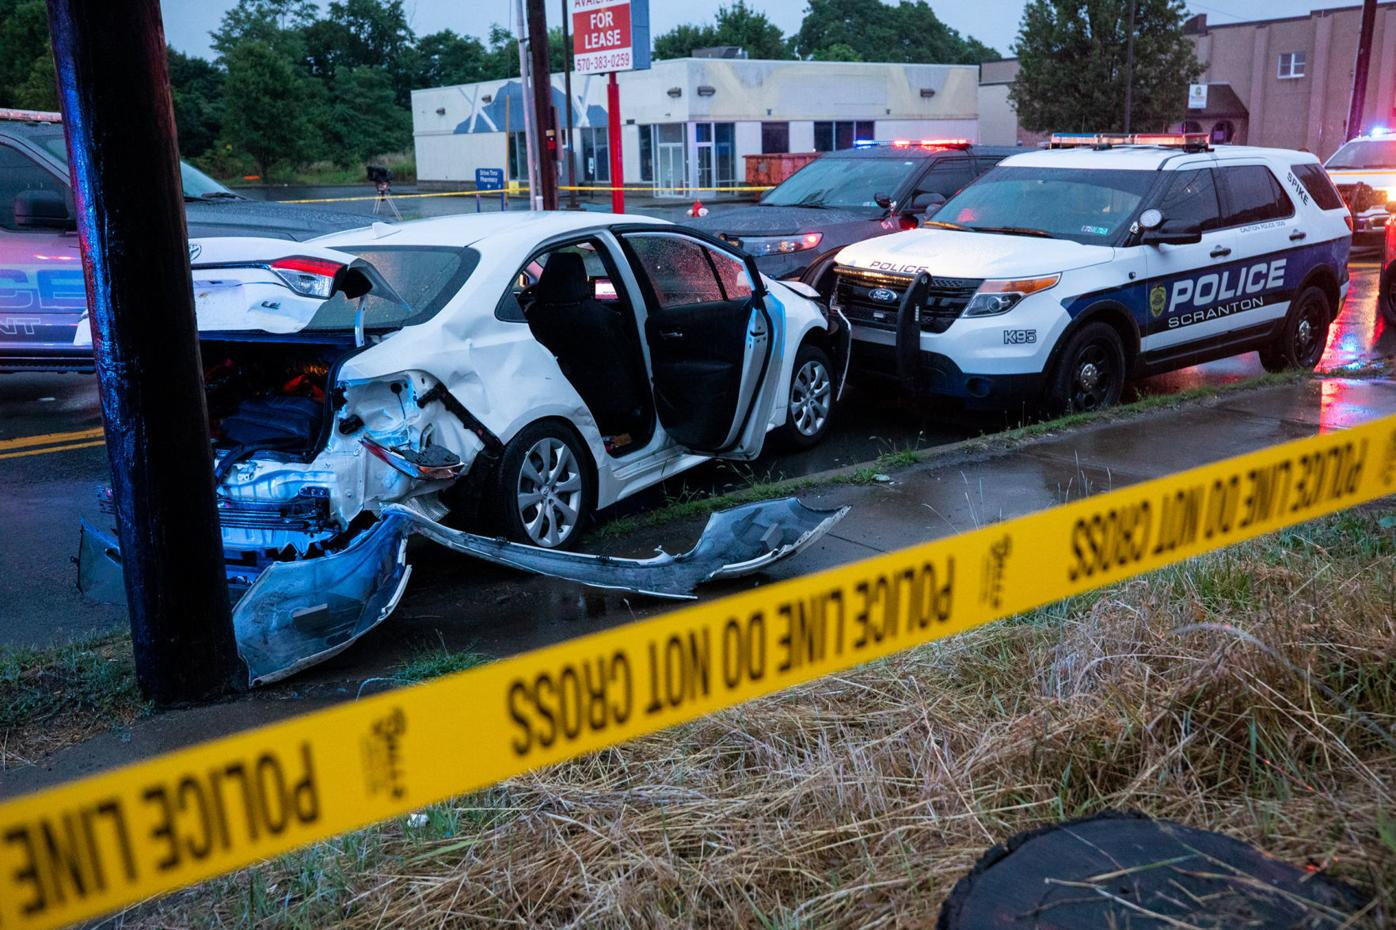 Police apprehend driver after hourlong vehicle chase